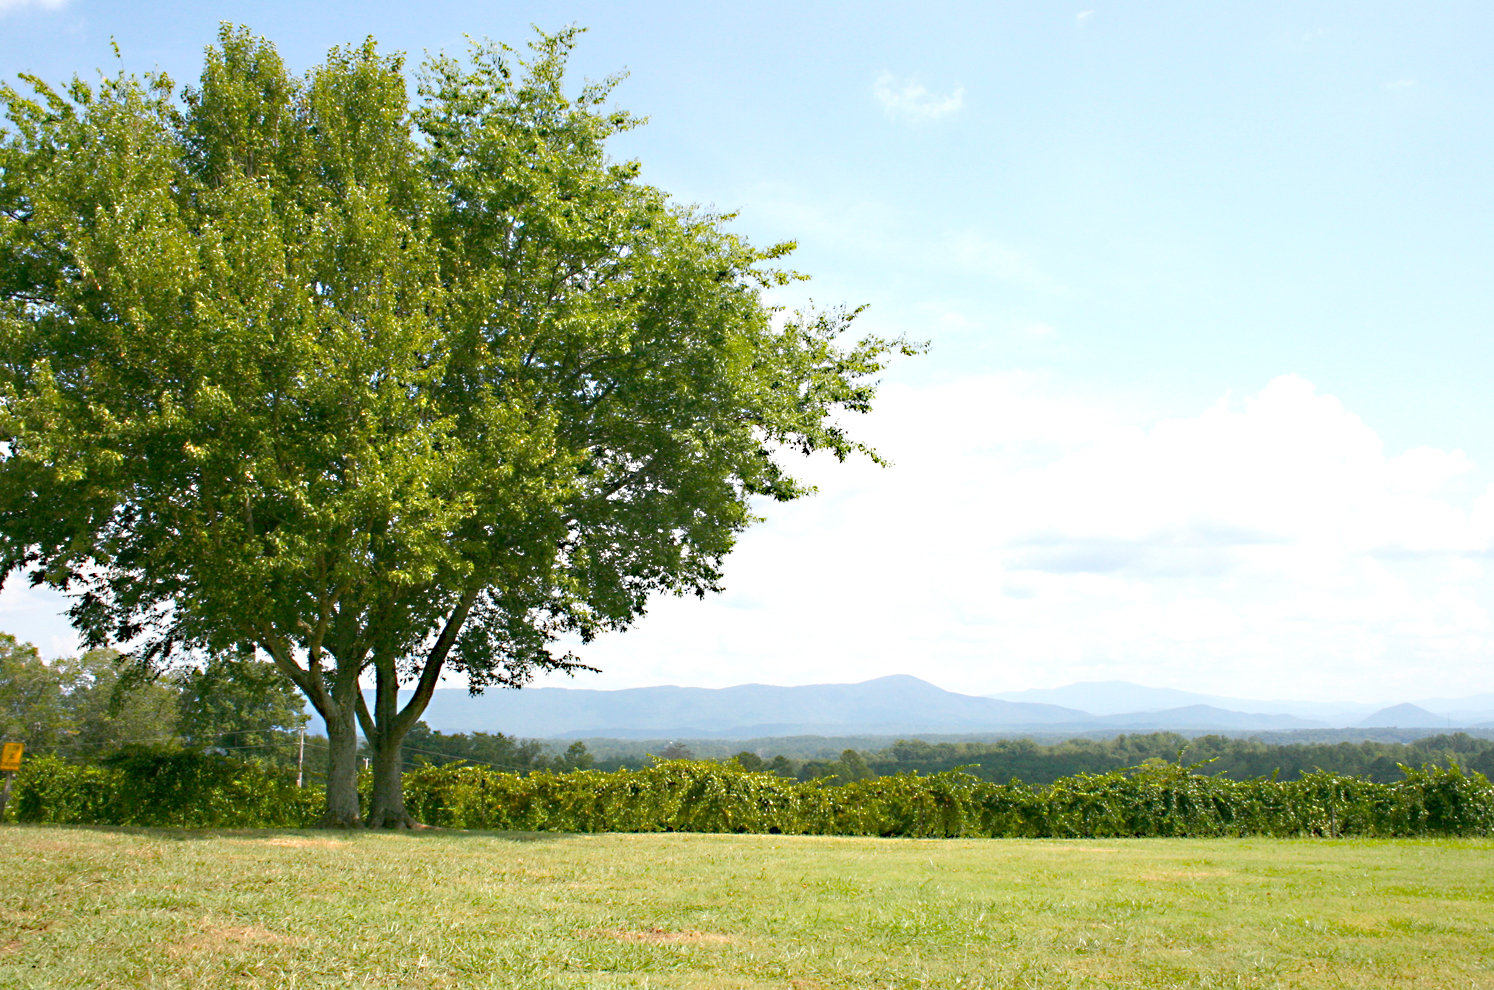 A BEAUTIFUL VIEW of the Smoky Mountains can be found near the entrance of Morris Vineyard in Charleston. MOUNTAINS TOWERING in the distance give Morris Vineyard's Mountain View label wine its name.